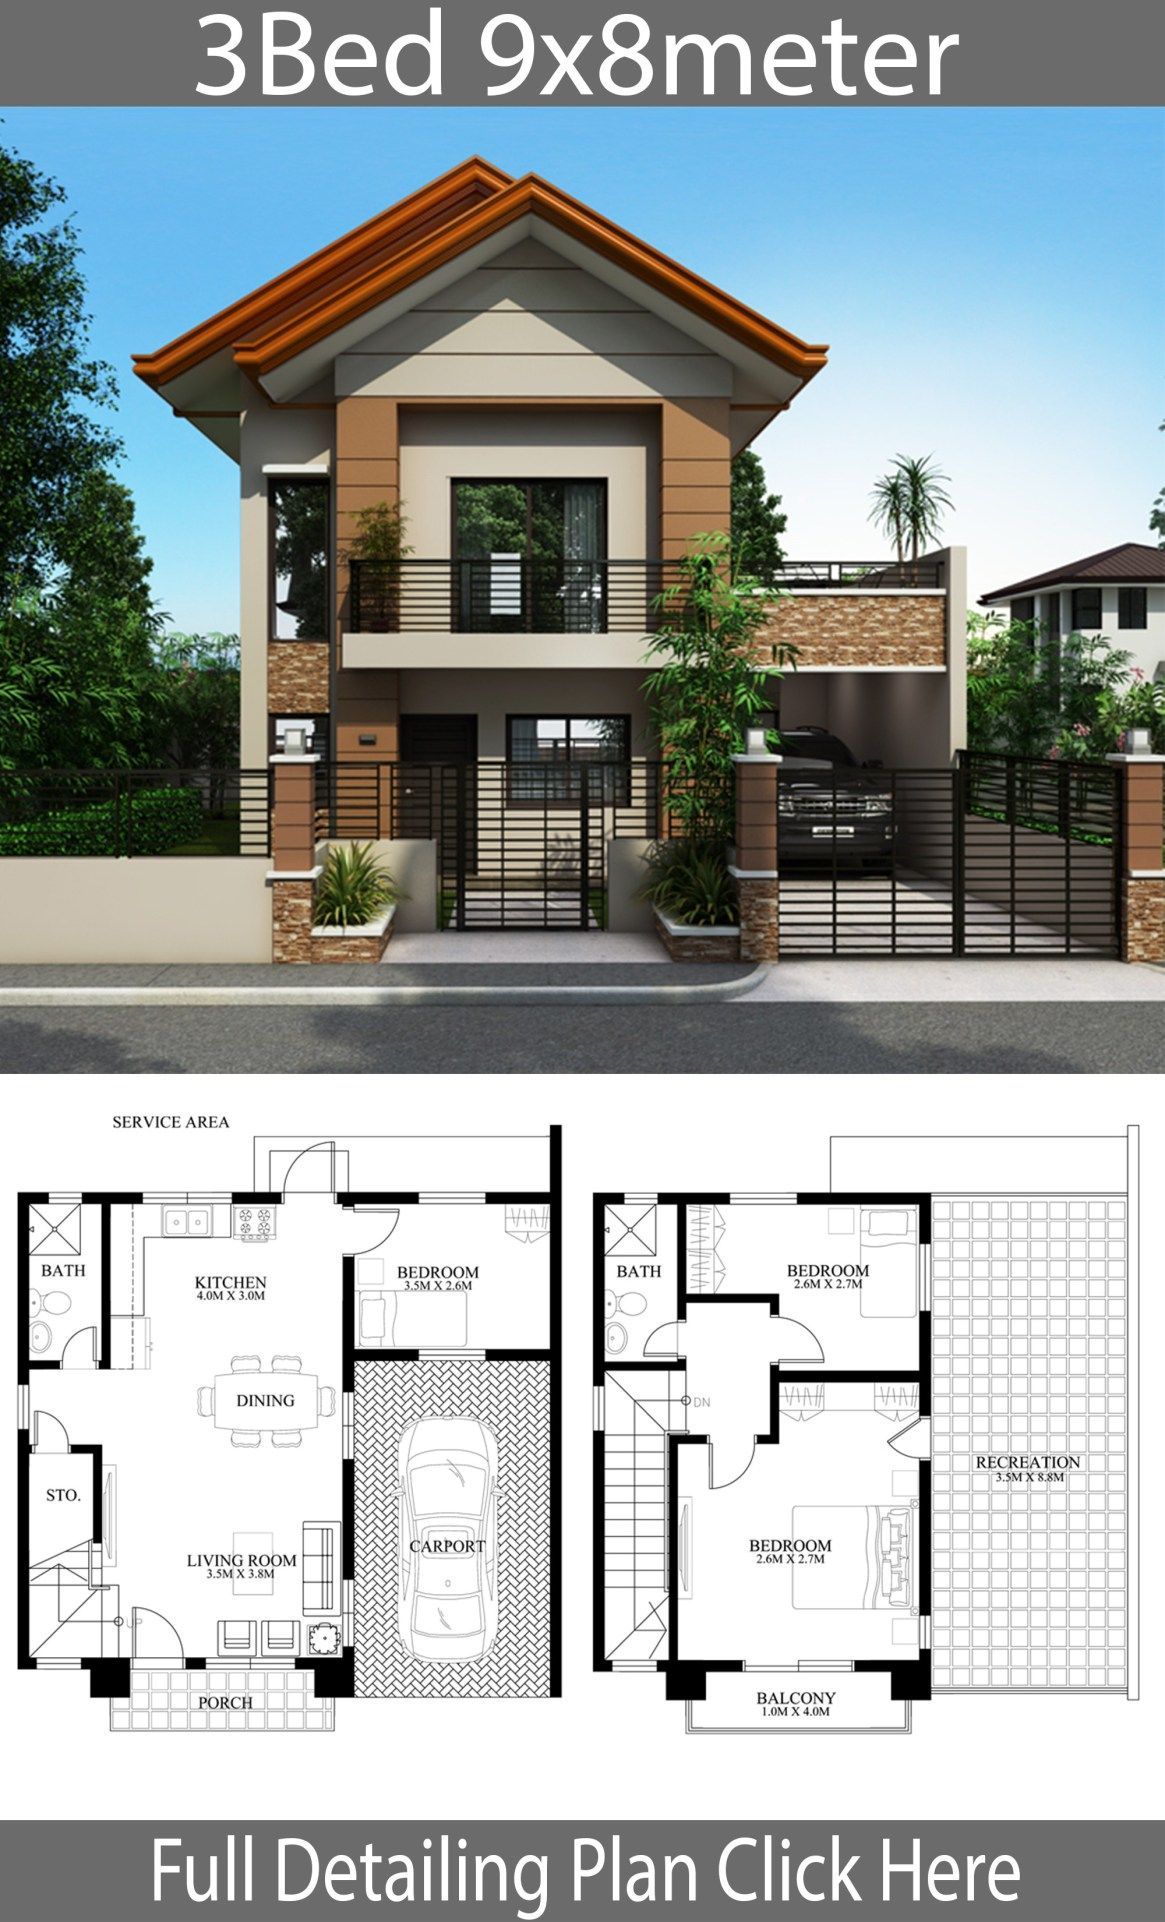 Home Design Plan 9x8m With 3 Bedrooms Home Design With Plansearch Philippines House Design Modern House Floor Plans 2 Storey House Design